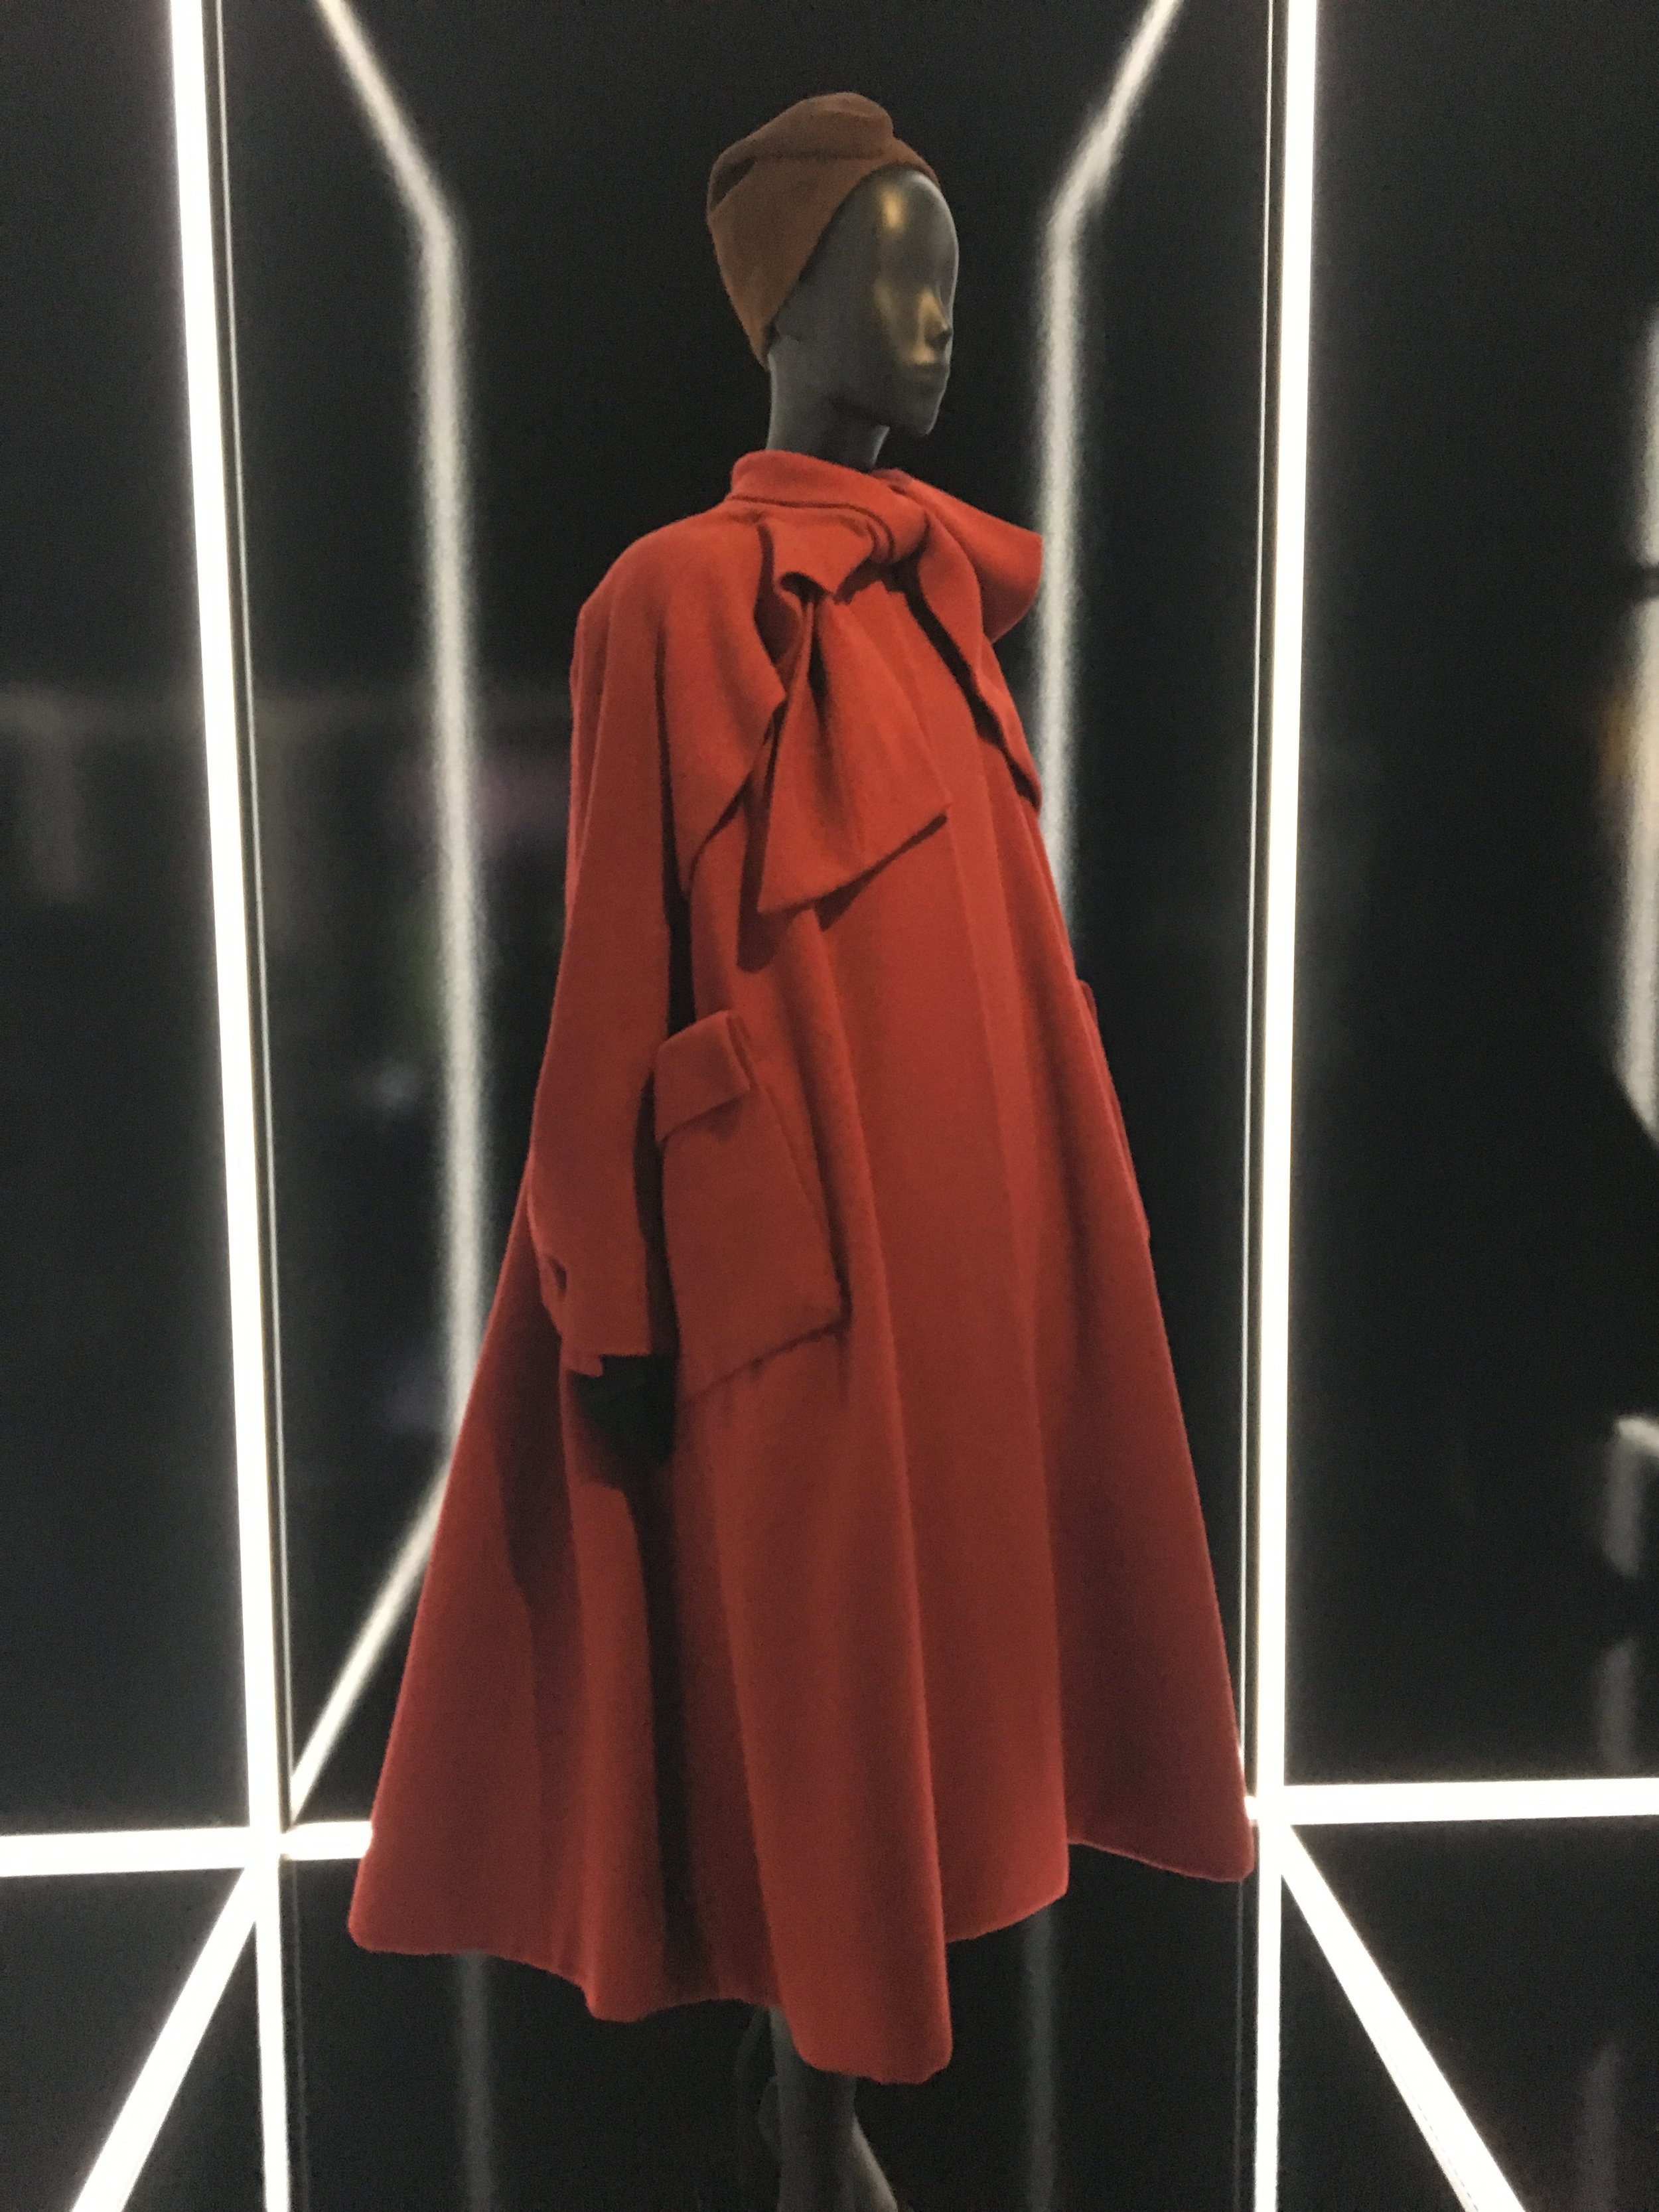 'Arizona', Christian Dior, HC A/W 1948